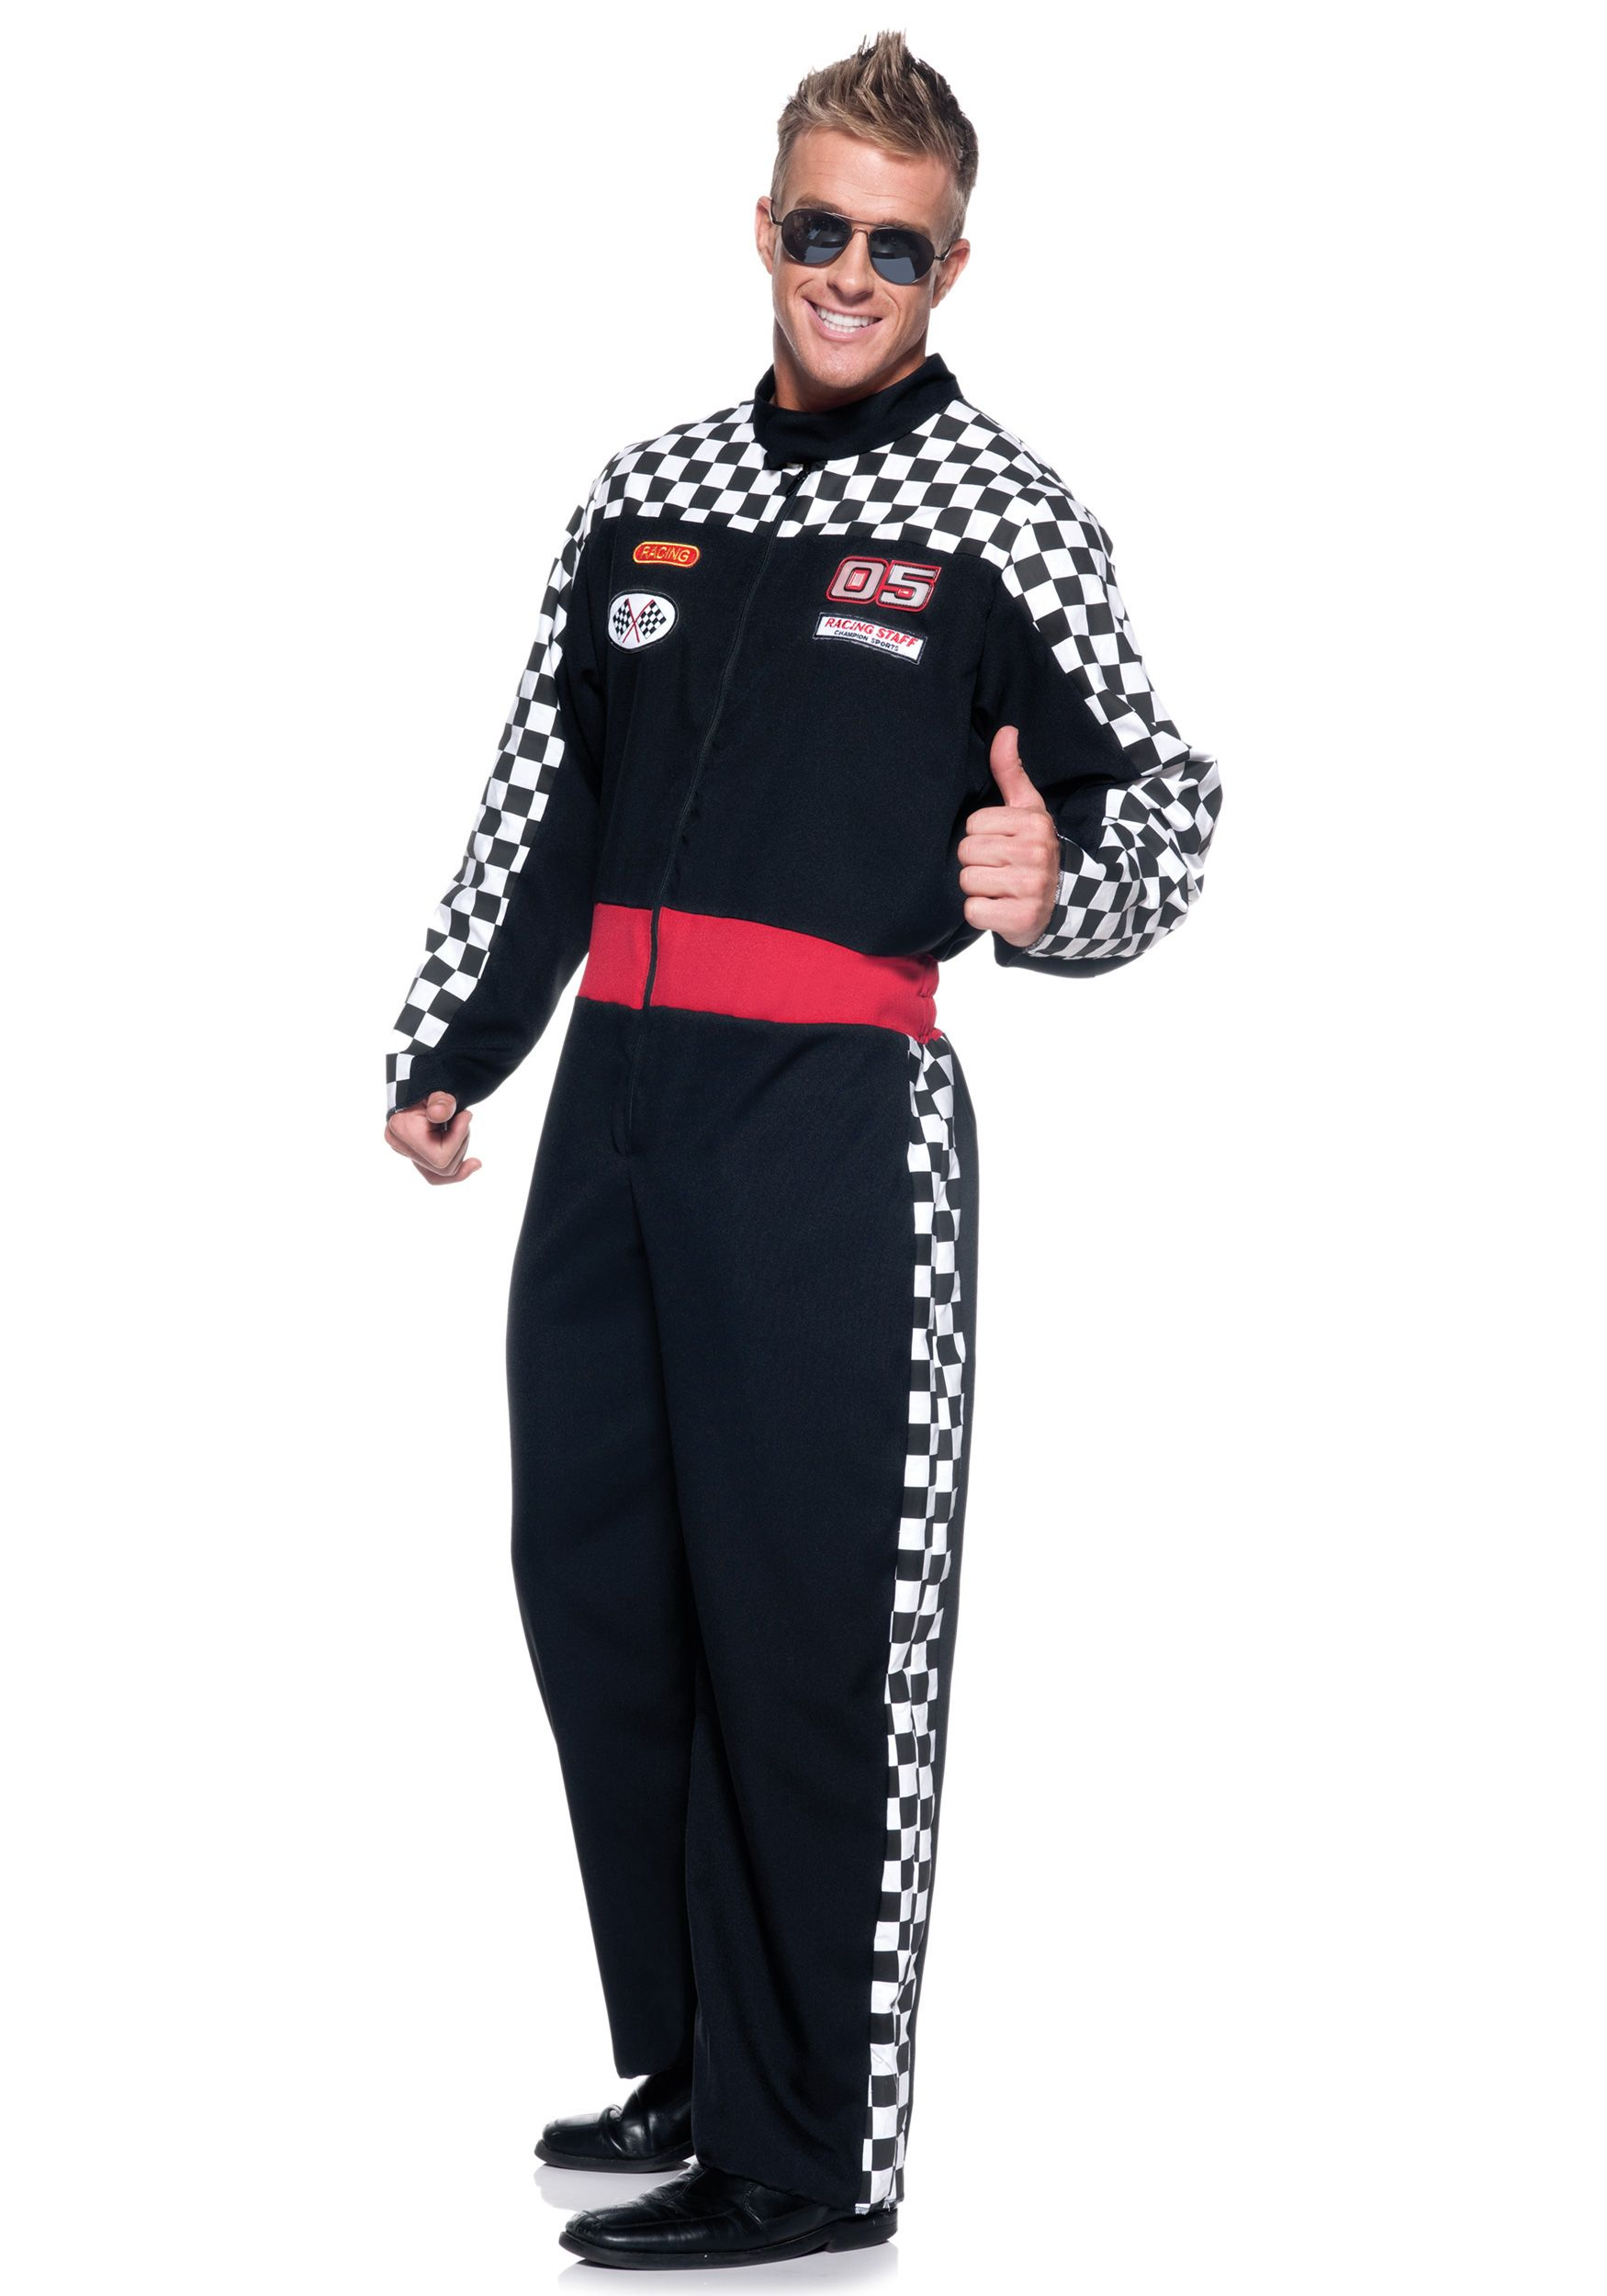 Mens Race Car Driver Costume Race car driver costume